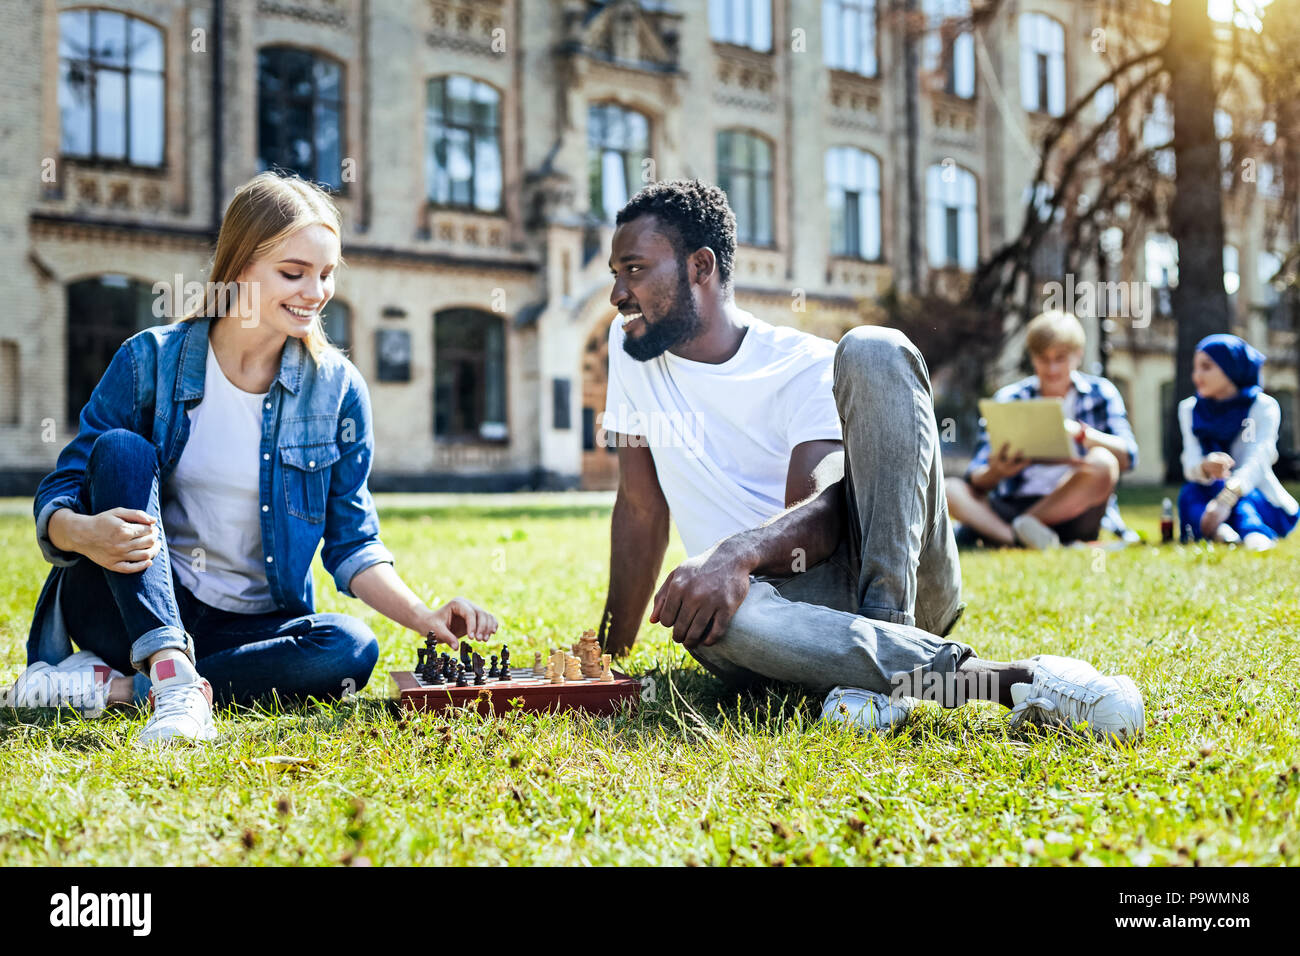 Joyful young people playing chess outdoors - Stock Image